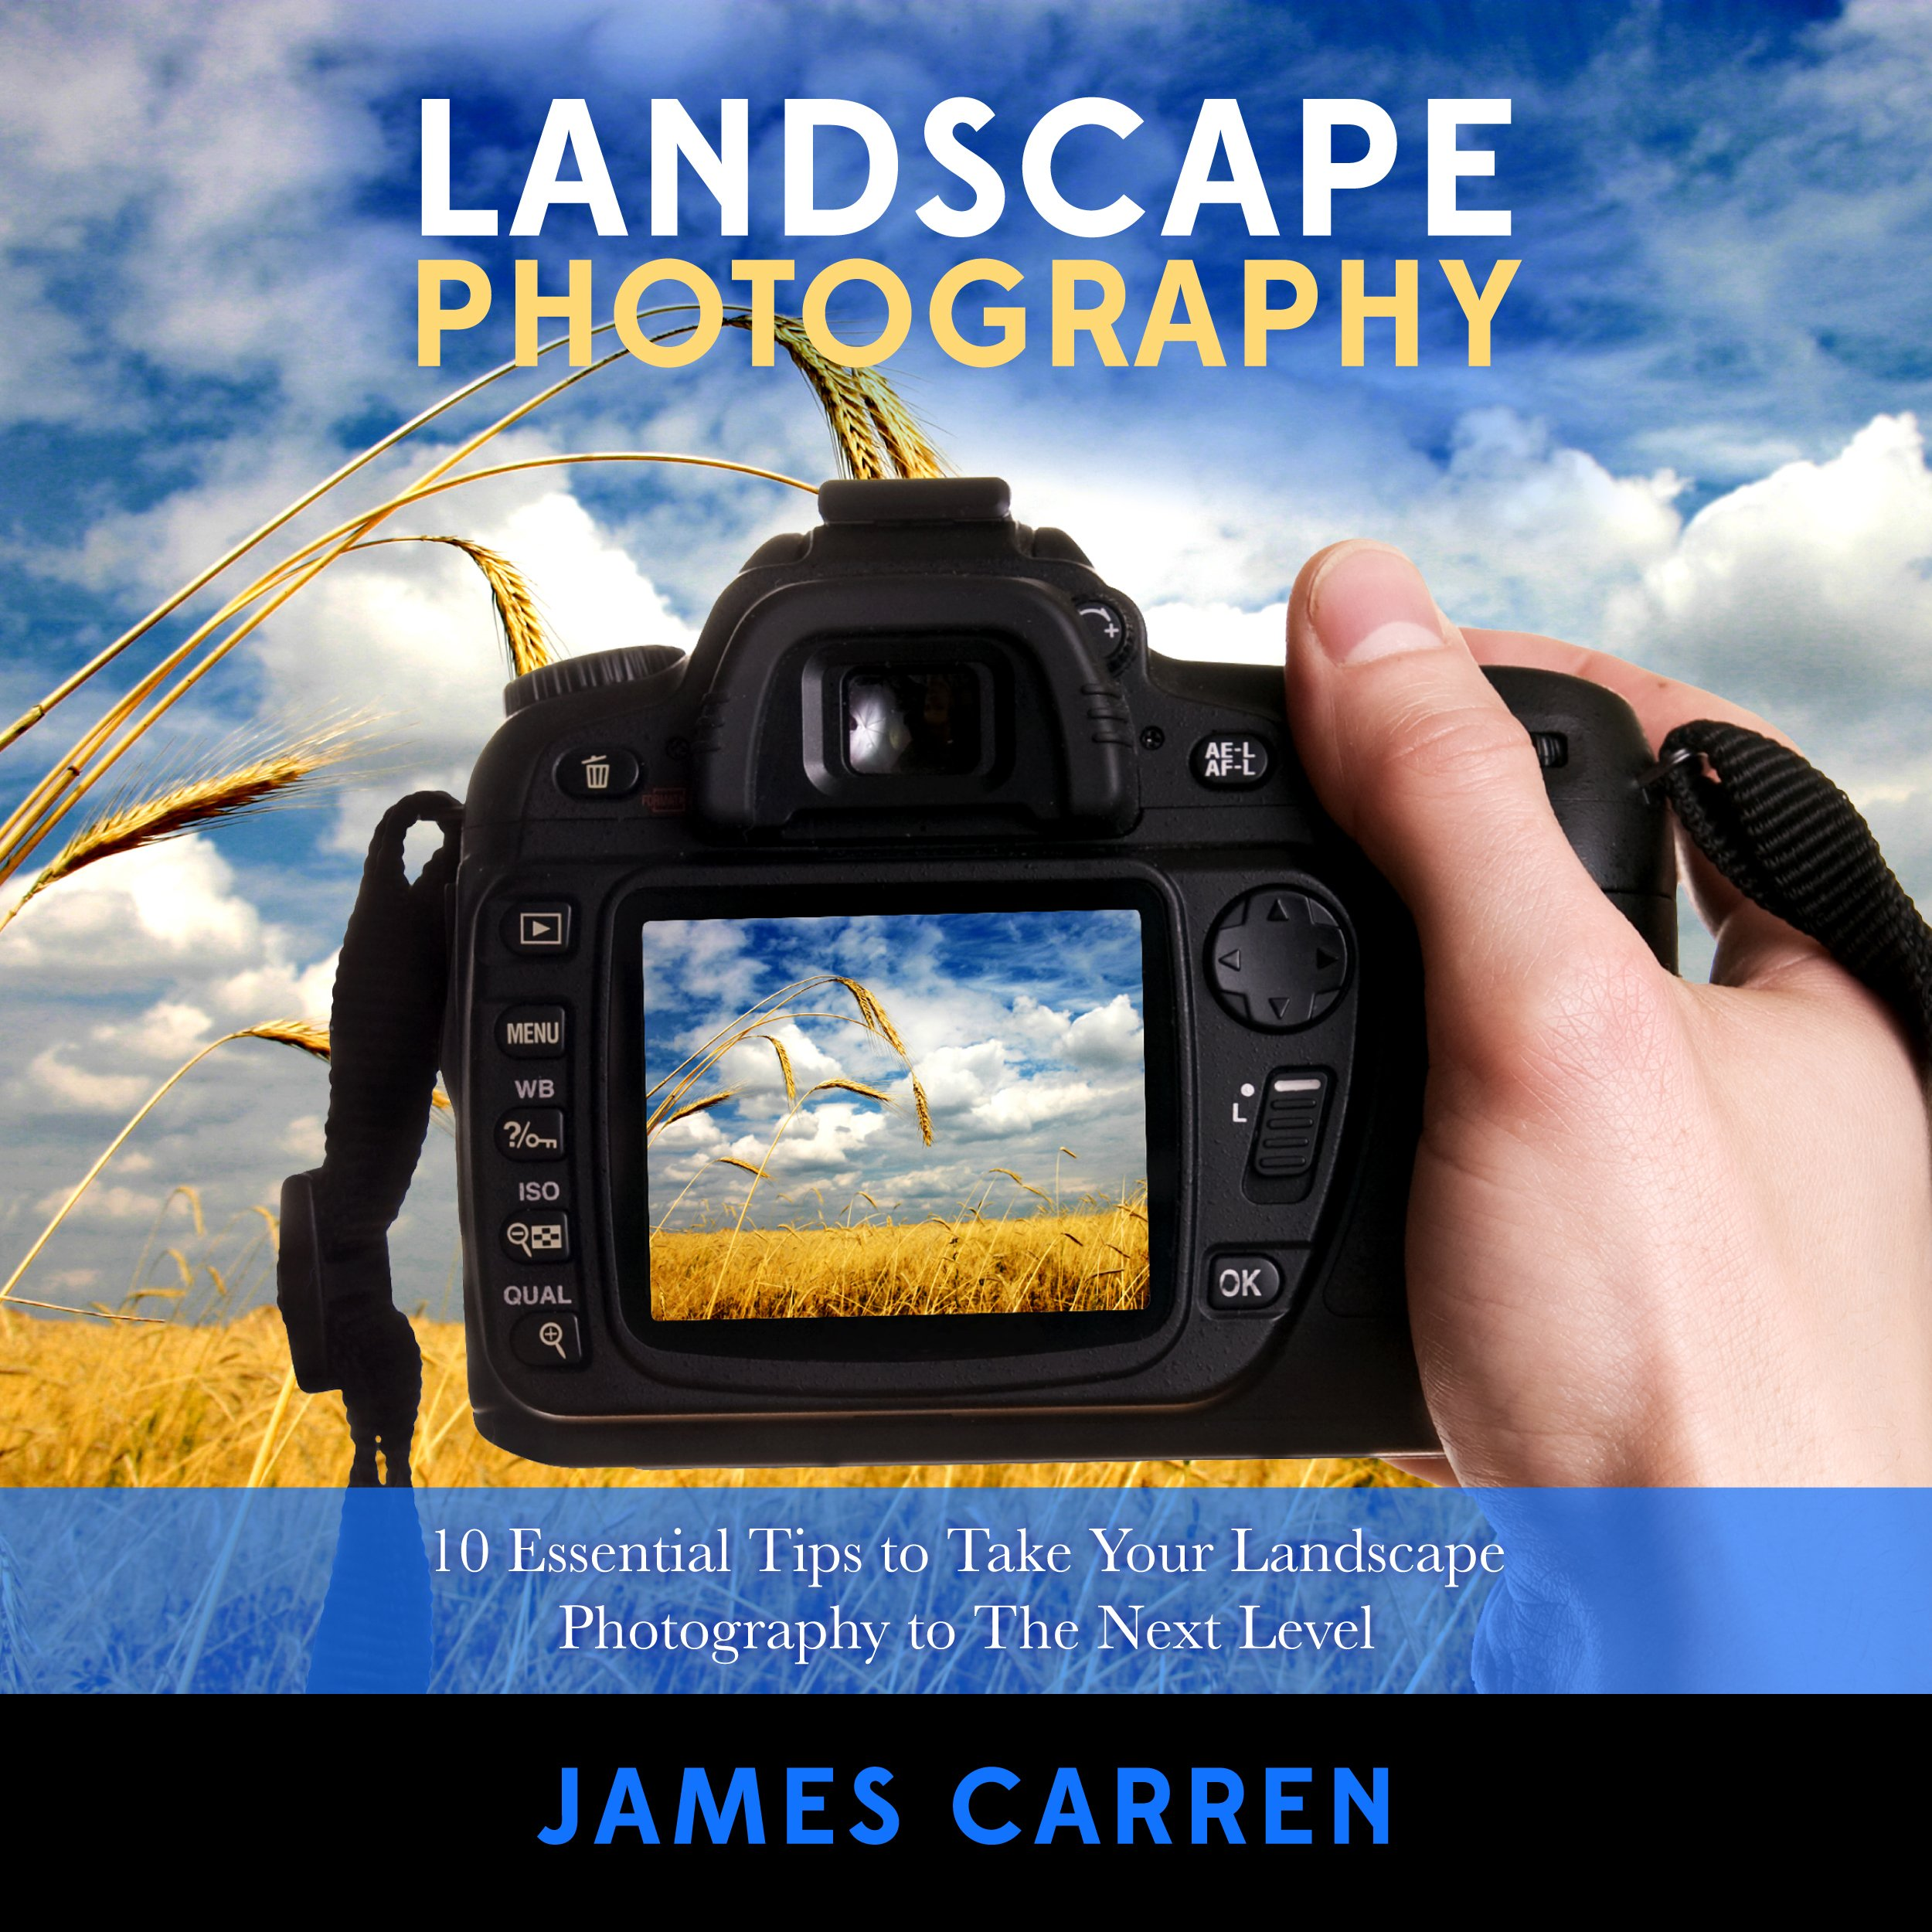 Photography: Landscape Photography: 10 Essential Tips to Take Your Landscape Photography to The Next Level